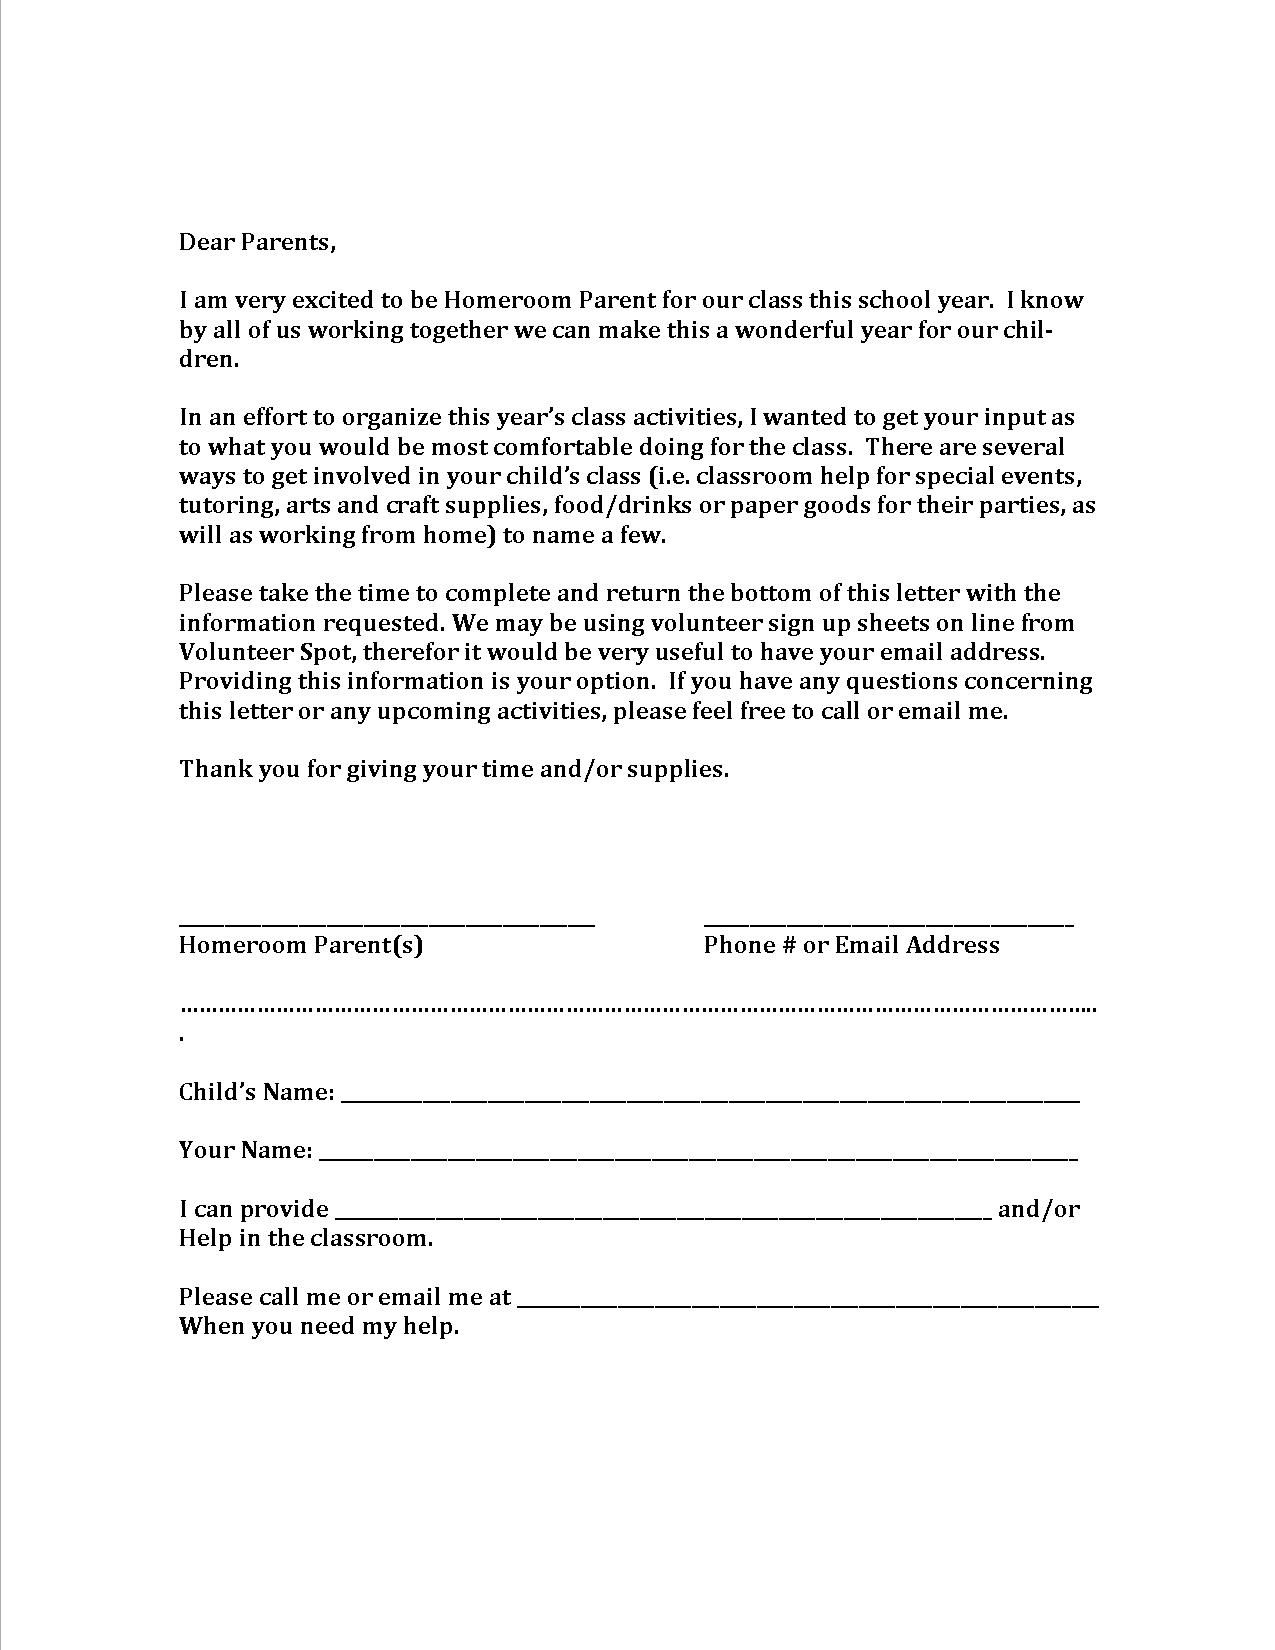 Community Service Letter Template For Students from i.pinimg.com